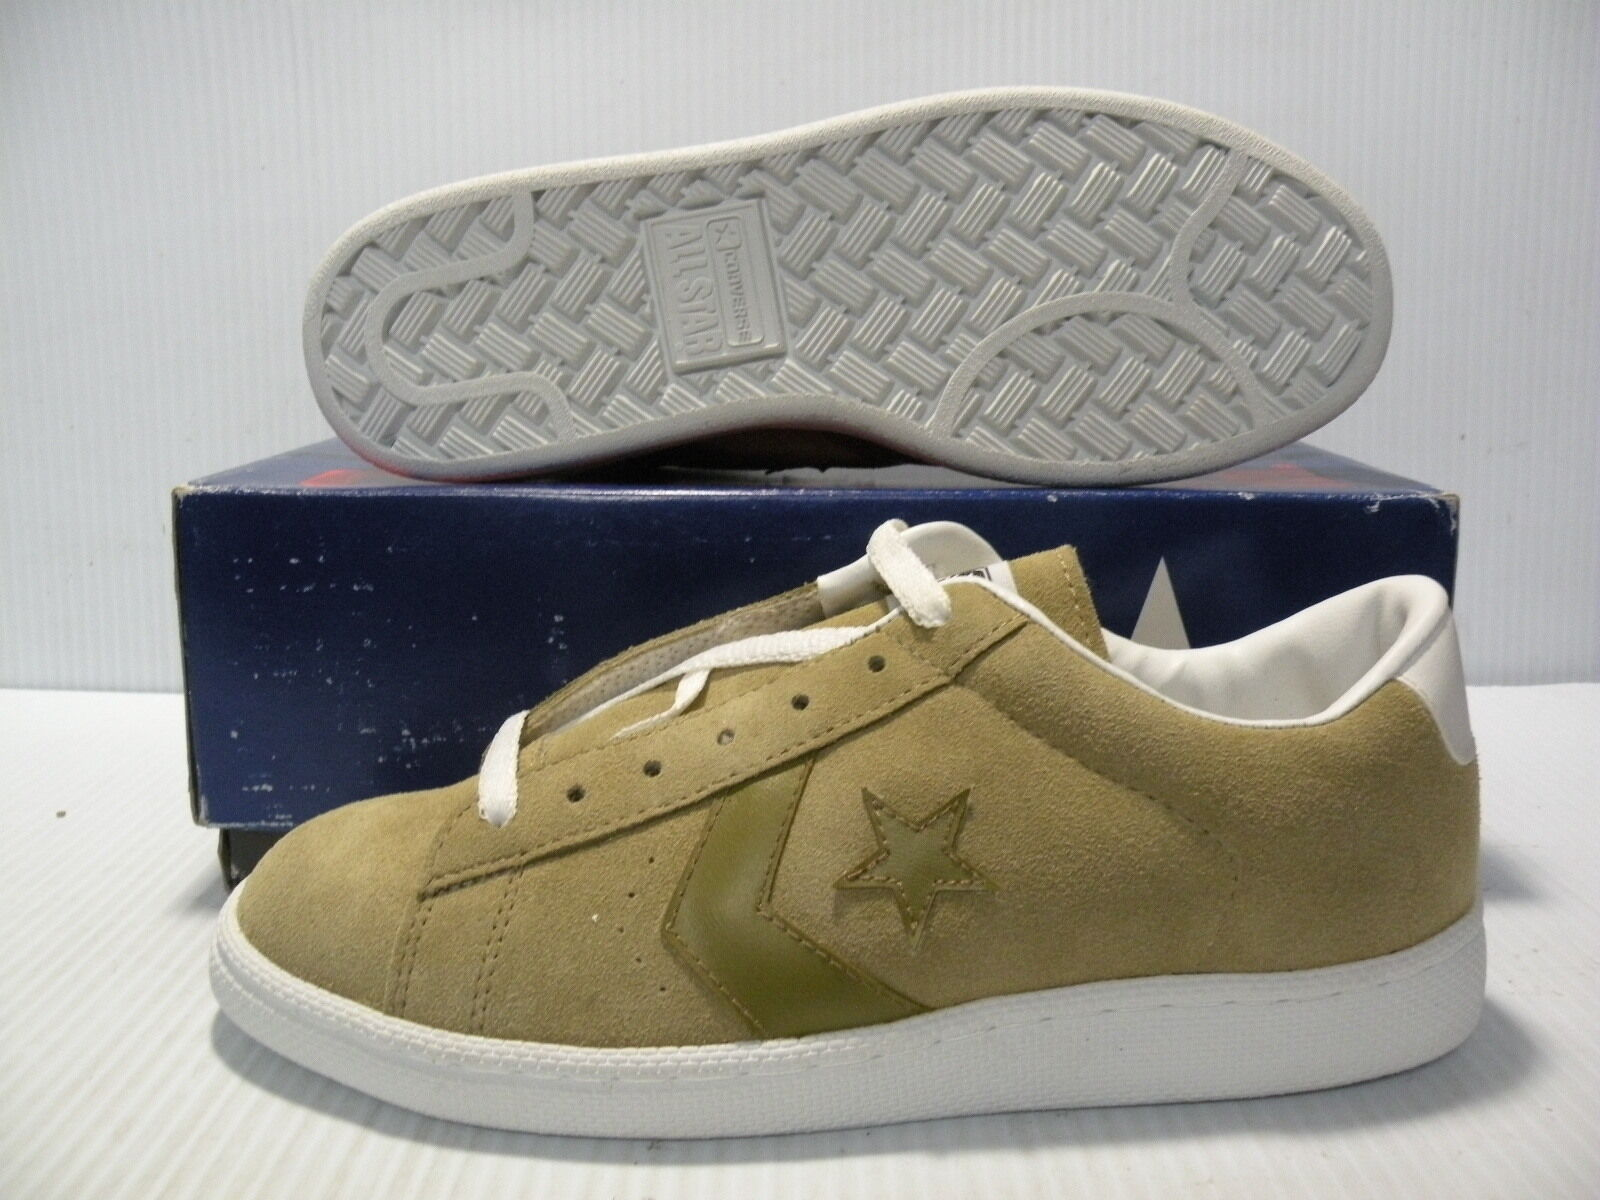 Primary image for CONVERSE PRO ALL STAR VINTAGE MEN SZ 7 / WOMEN SZ 8.5 SHOES MUSTARD 18276 NEW